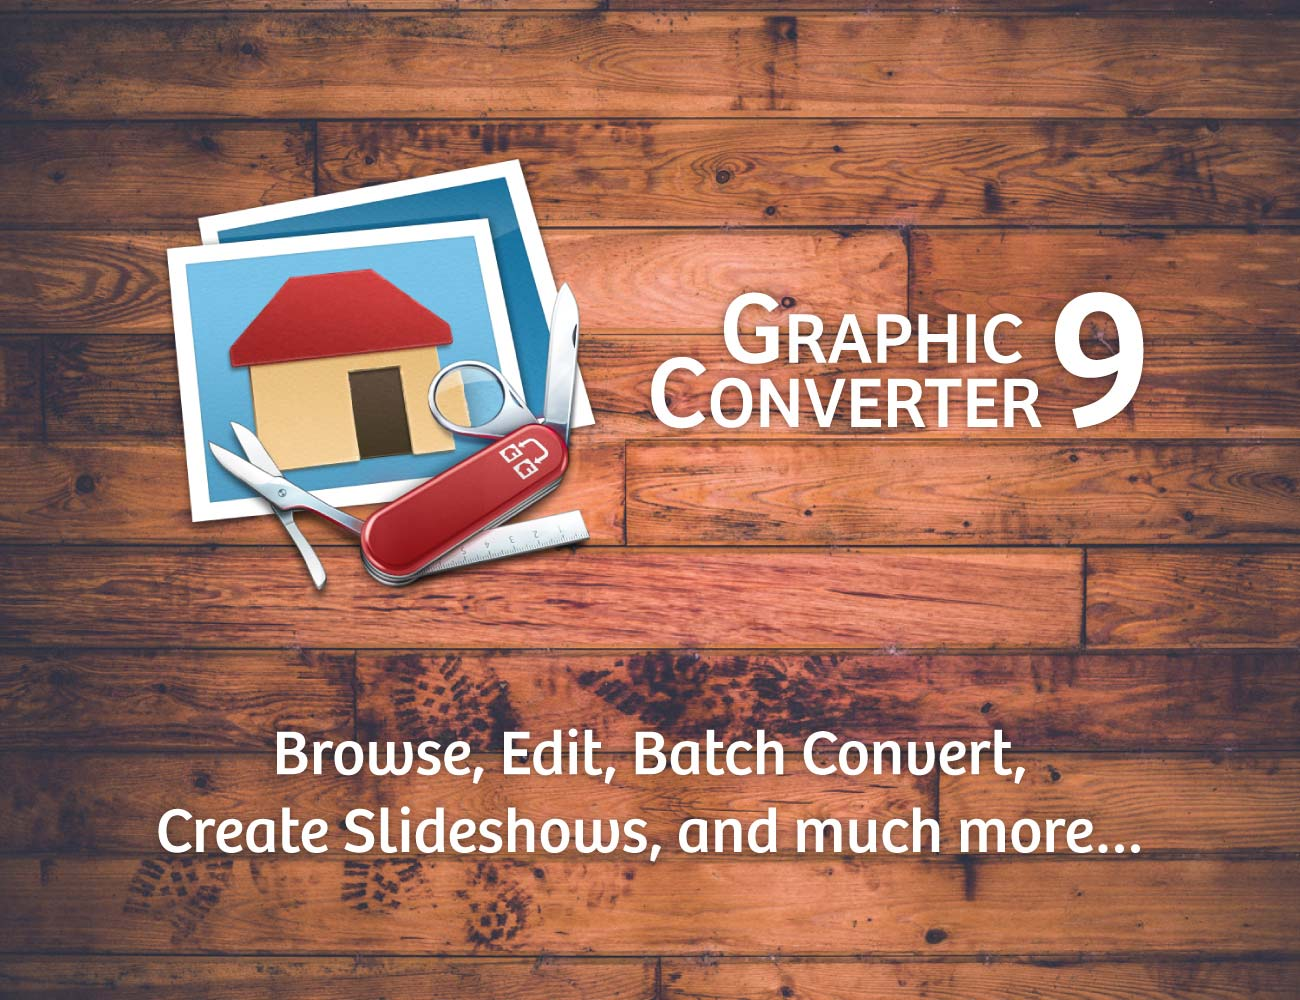 GraphiConverter